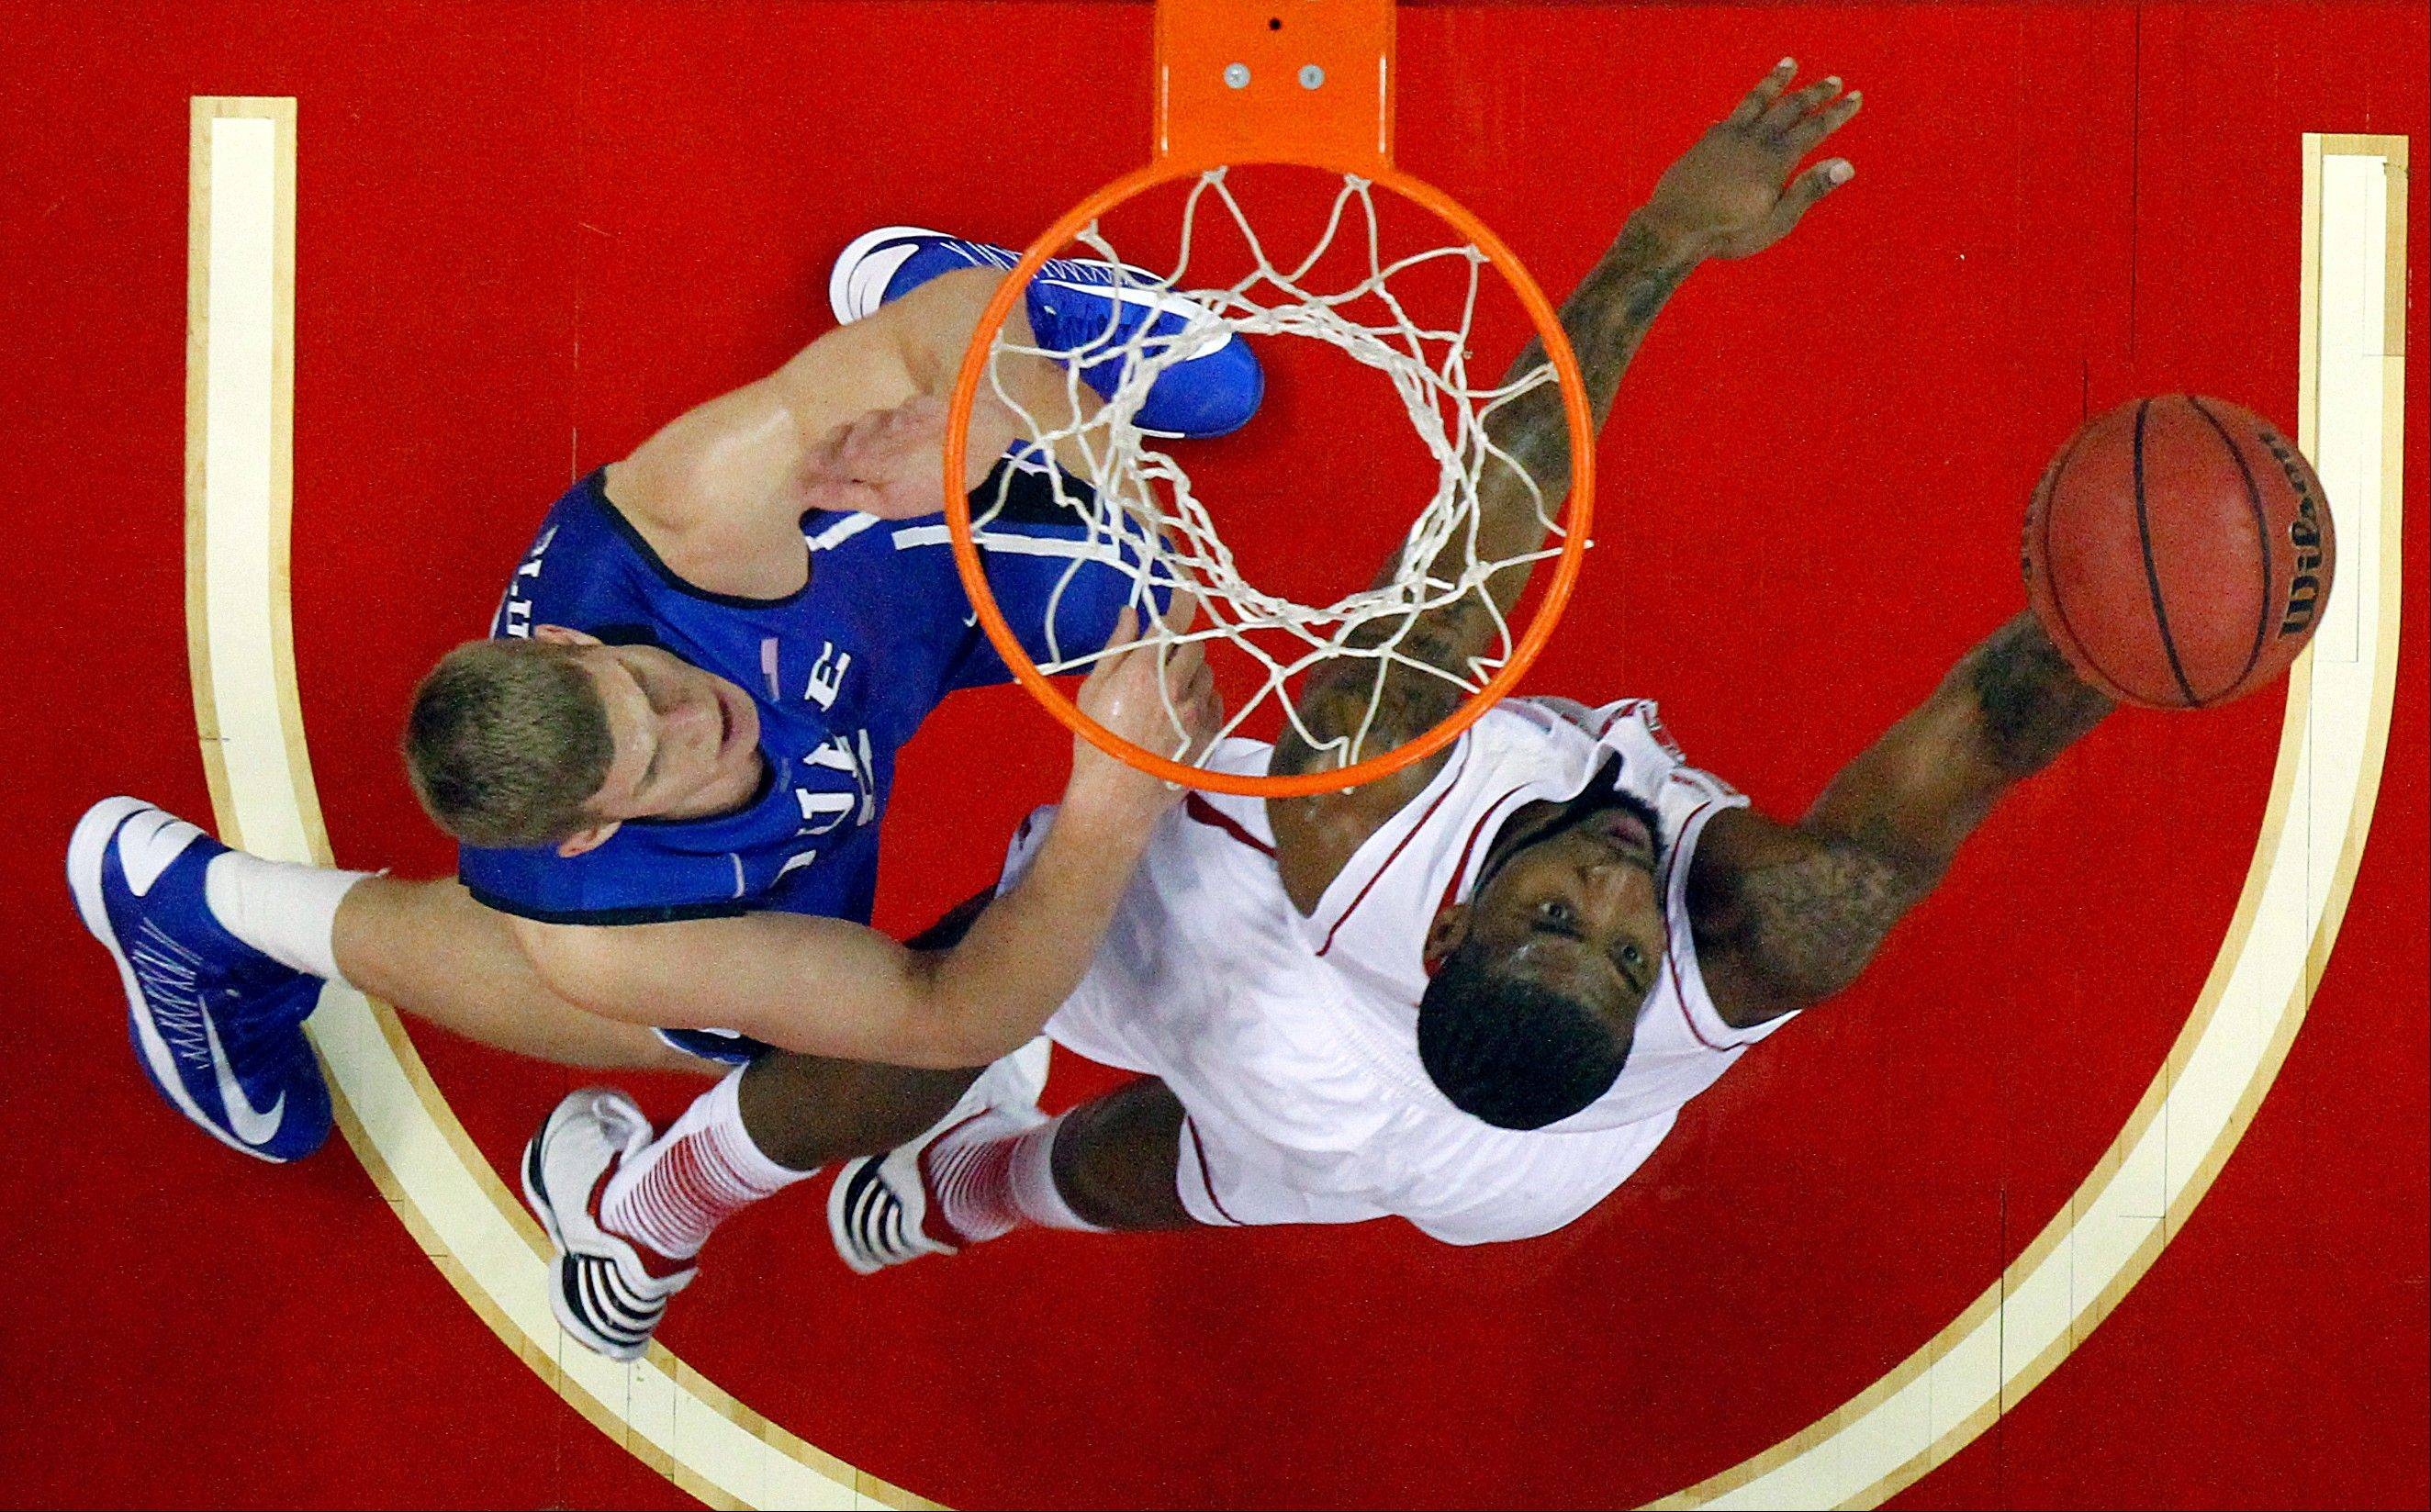 CORRECTS FIRST NAME TO MASON, NOT MARSHALL - North Carolina State's Richard Howell (1) shoots the ball over Duke's Mason Plumlee (5) during the first half of an NCAA college basketball game in Raleigh, N.C., Saturday, Jan. 12, 2013. Howell scored 16 points in State's 84-76 win over No. 1 Duke. (AP Photo/Karl B DeBlaker)